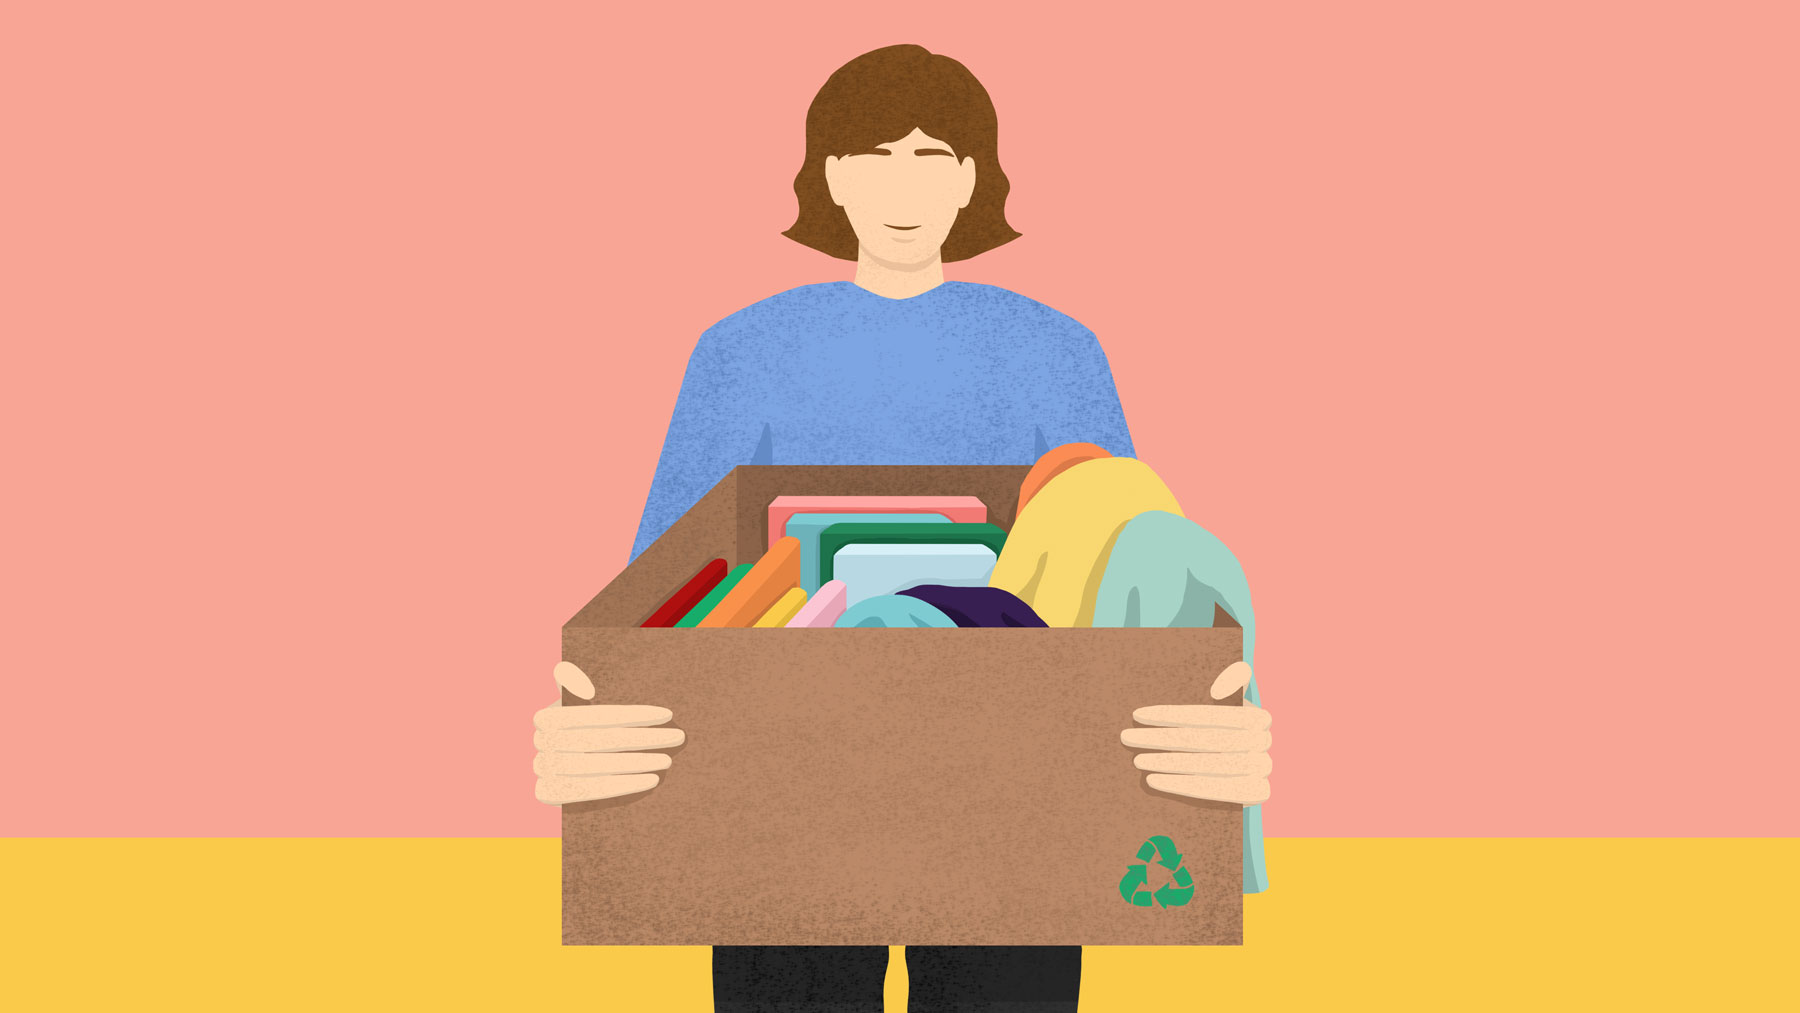 Zero waste disposal options - person donating items